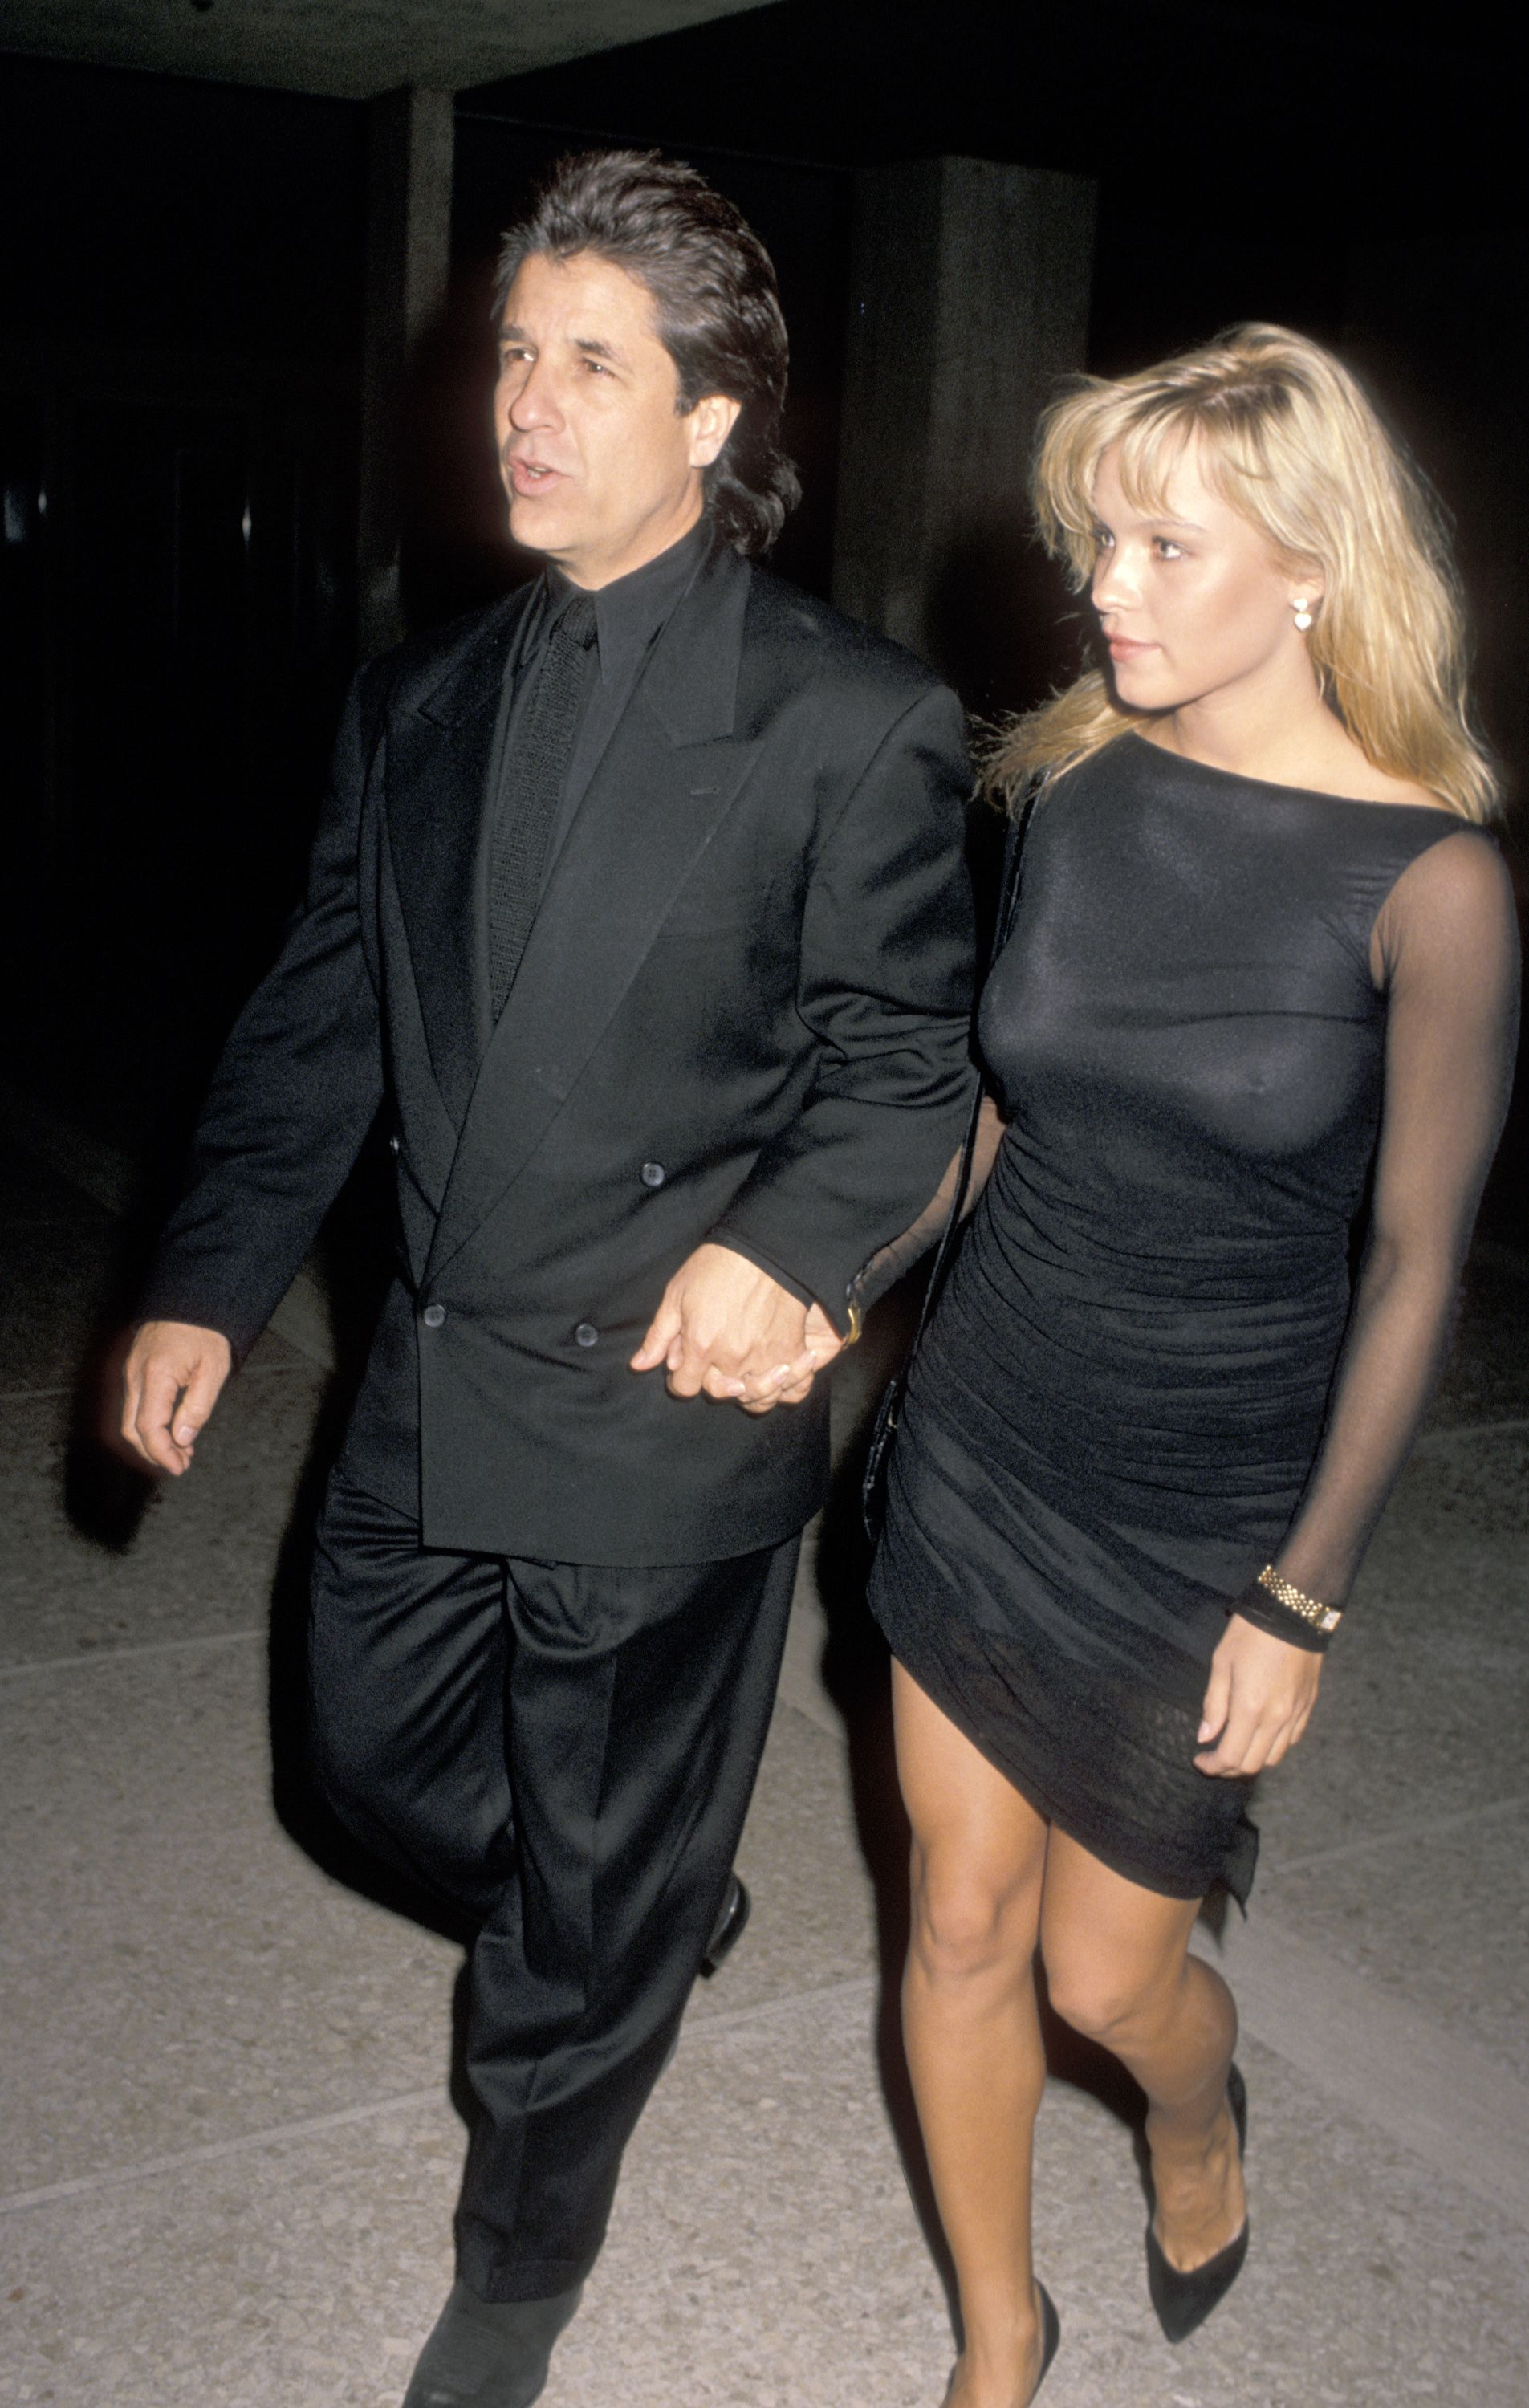 """Pamela Anderson and Jon Peters at the """"Glory"""" Los Angeles premiere in 1989 